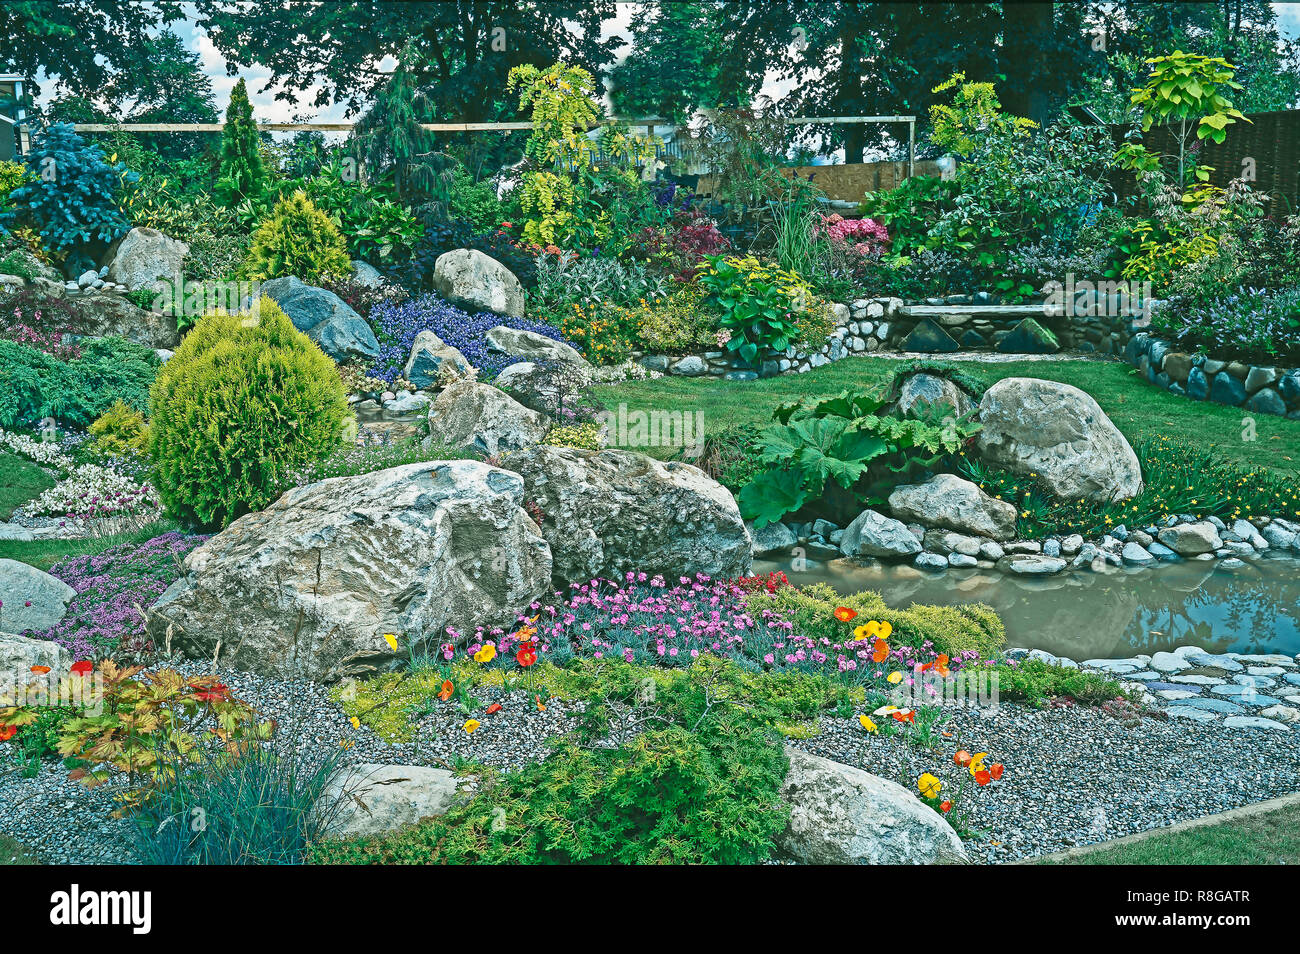 Rockery and water garden with mixed planting of alpine flowers, plants and shrubs. - Stock Image